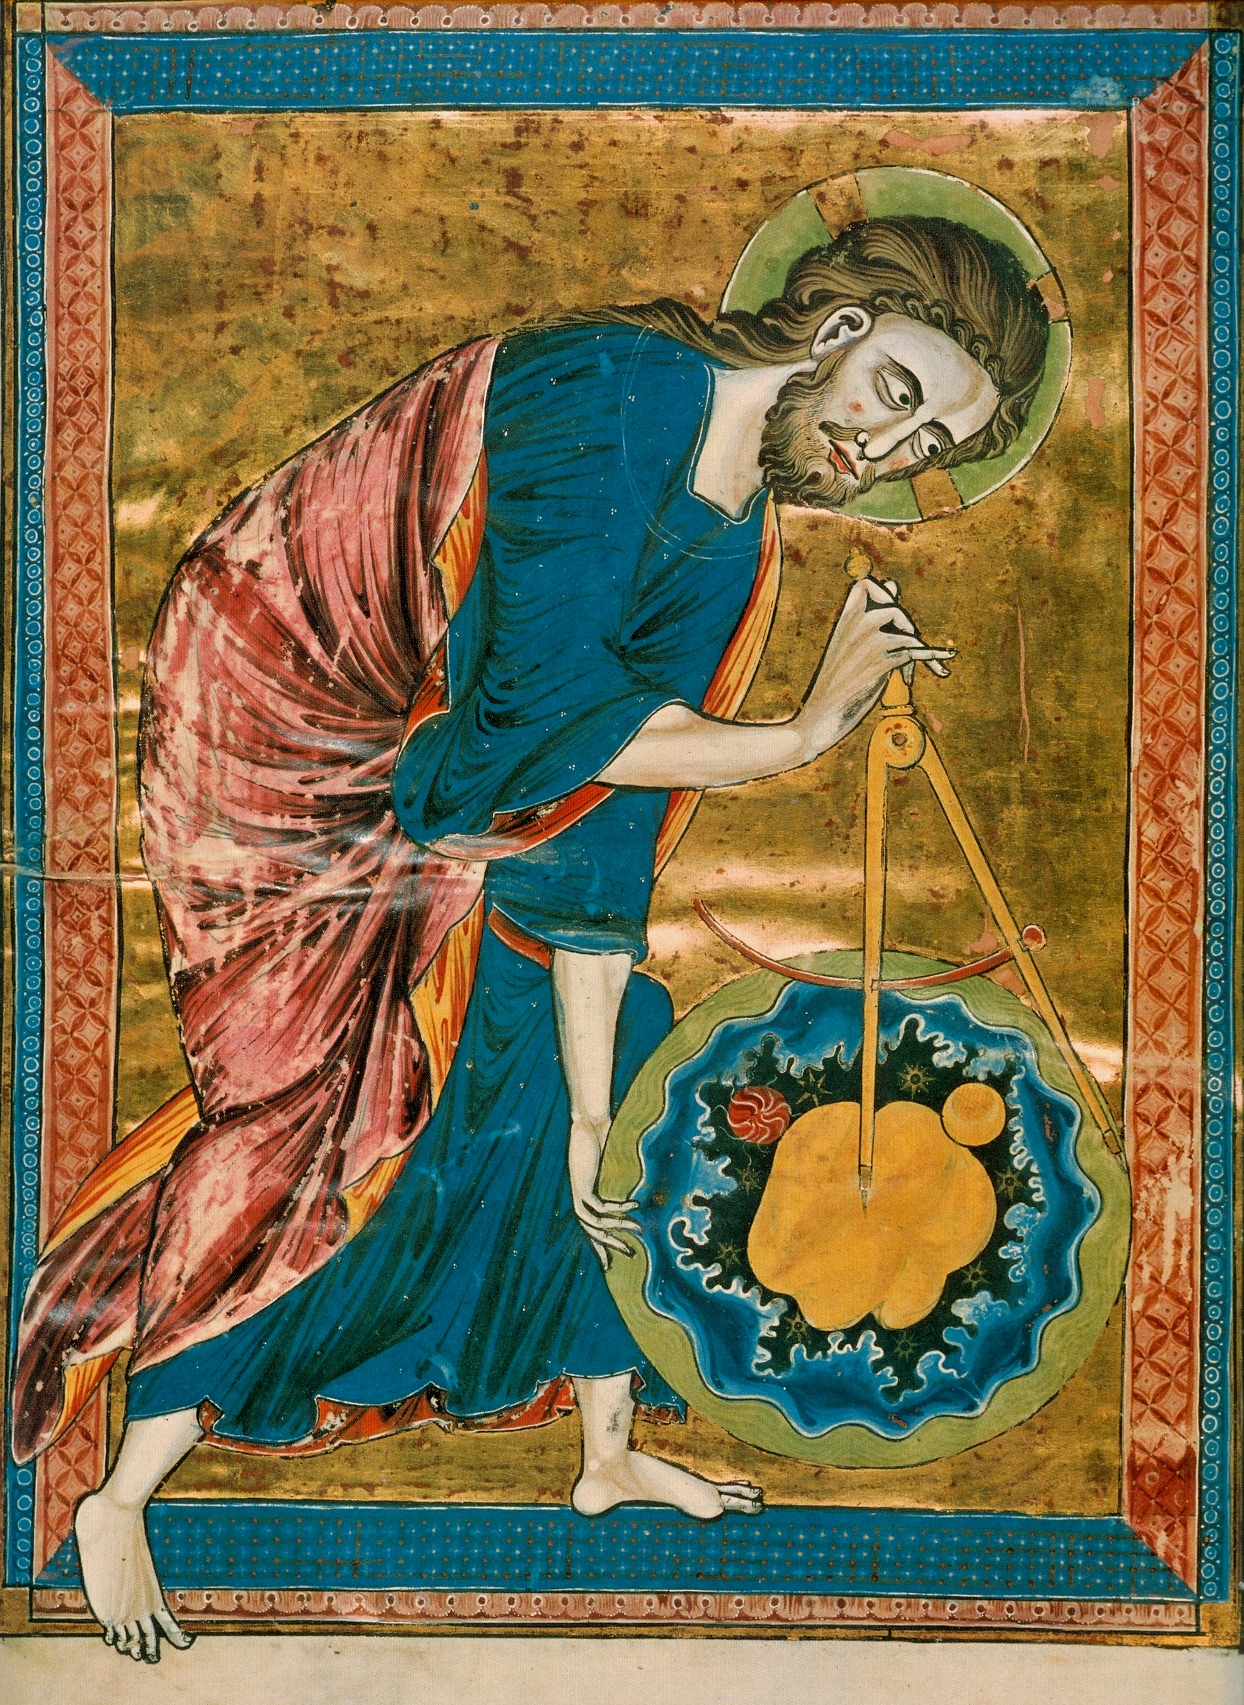 http://upload.wikimedia.org/wikipedia/commons/4/4d/God_the_Geometer.jpg